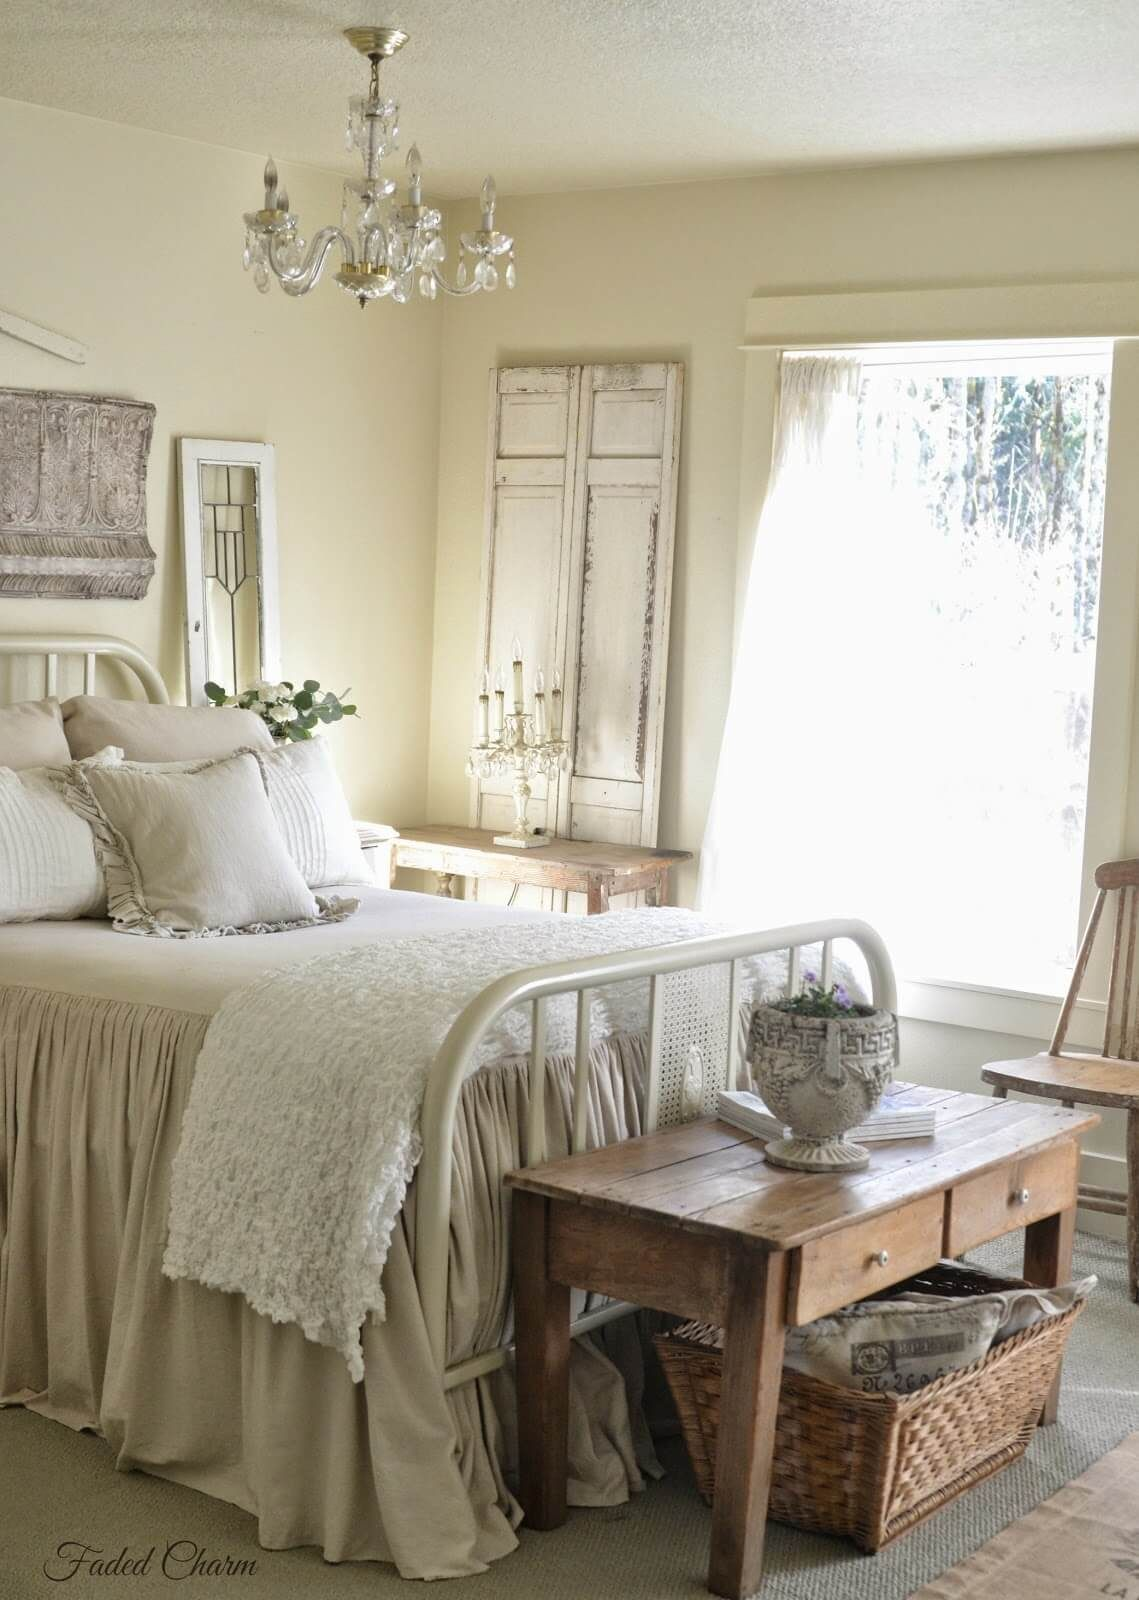 Attraktiv Charming Bedroom With Antique Bed Frame